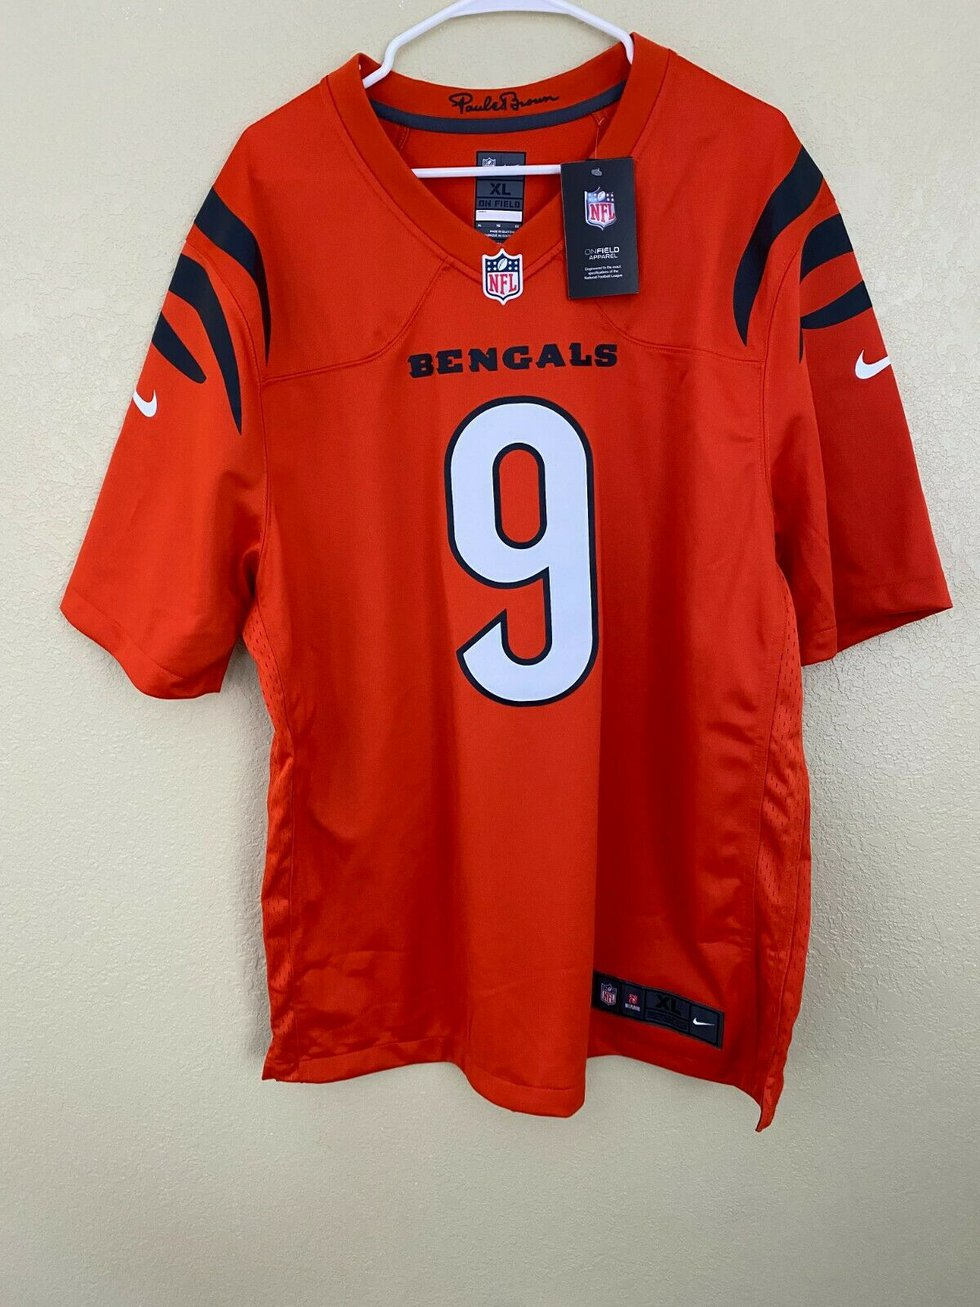 One of the Bengals' 2021-22 jerseys might have been leaked online Sunday.